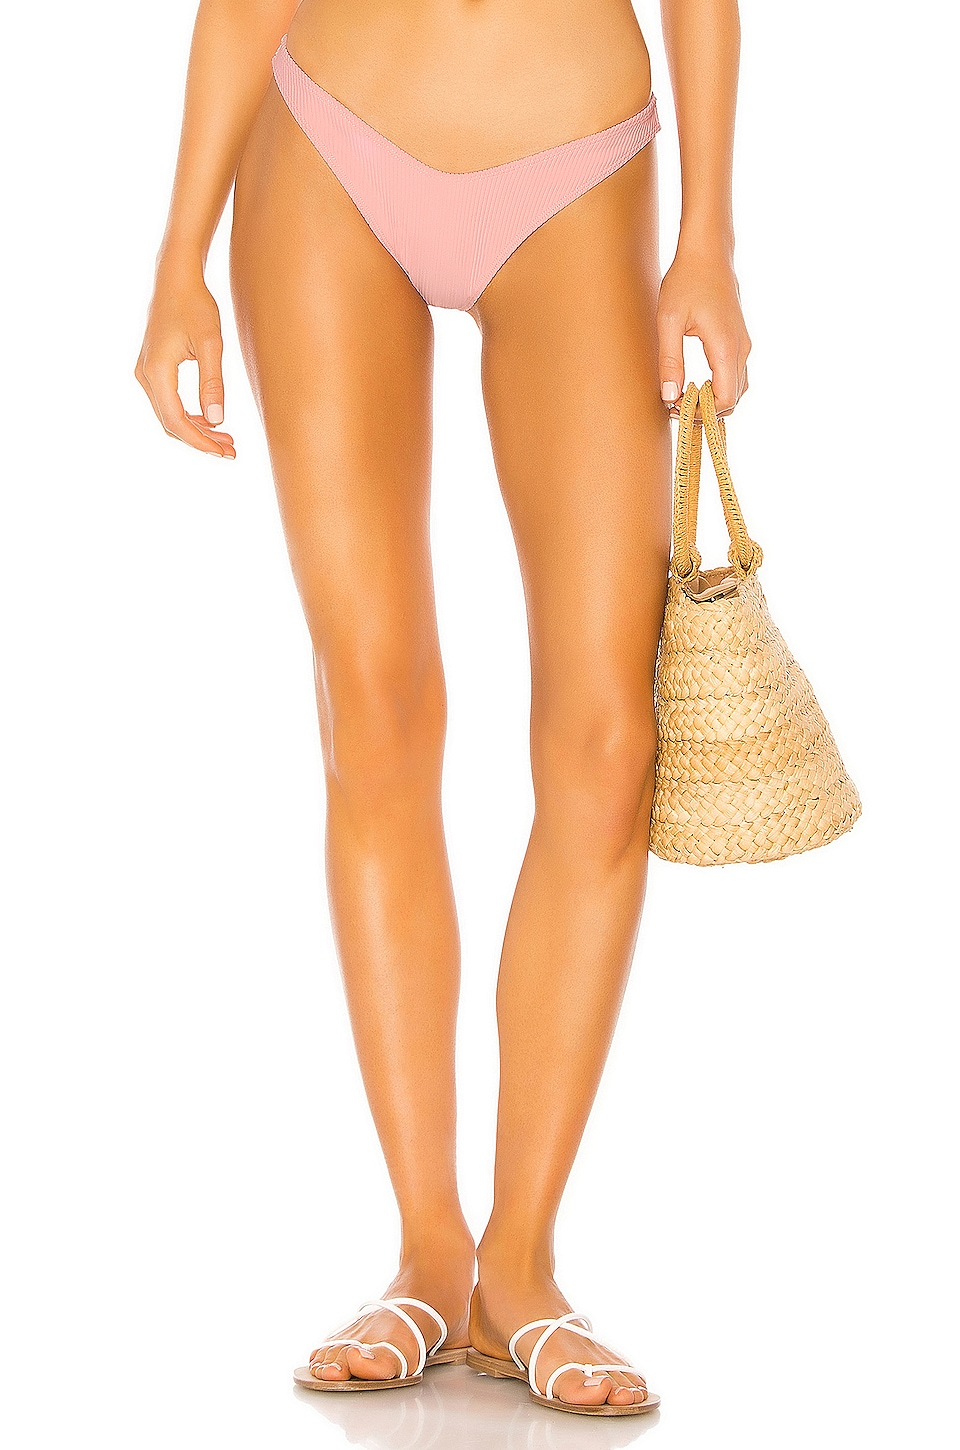 Tularosa Crescent Bay Bottom in Candy Pink